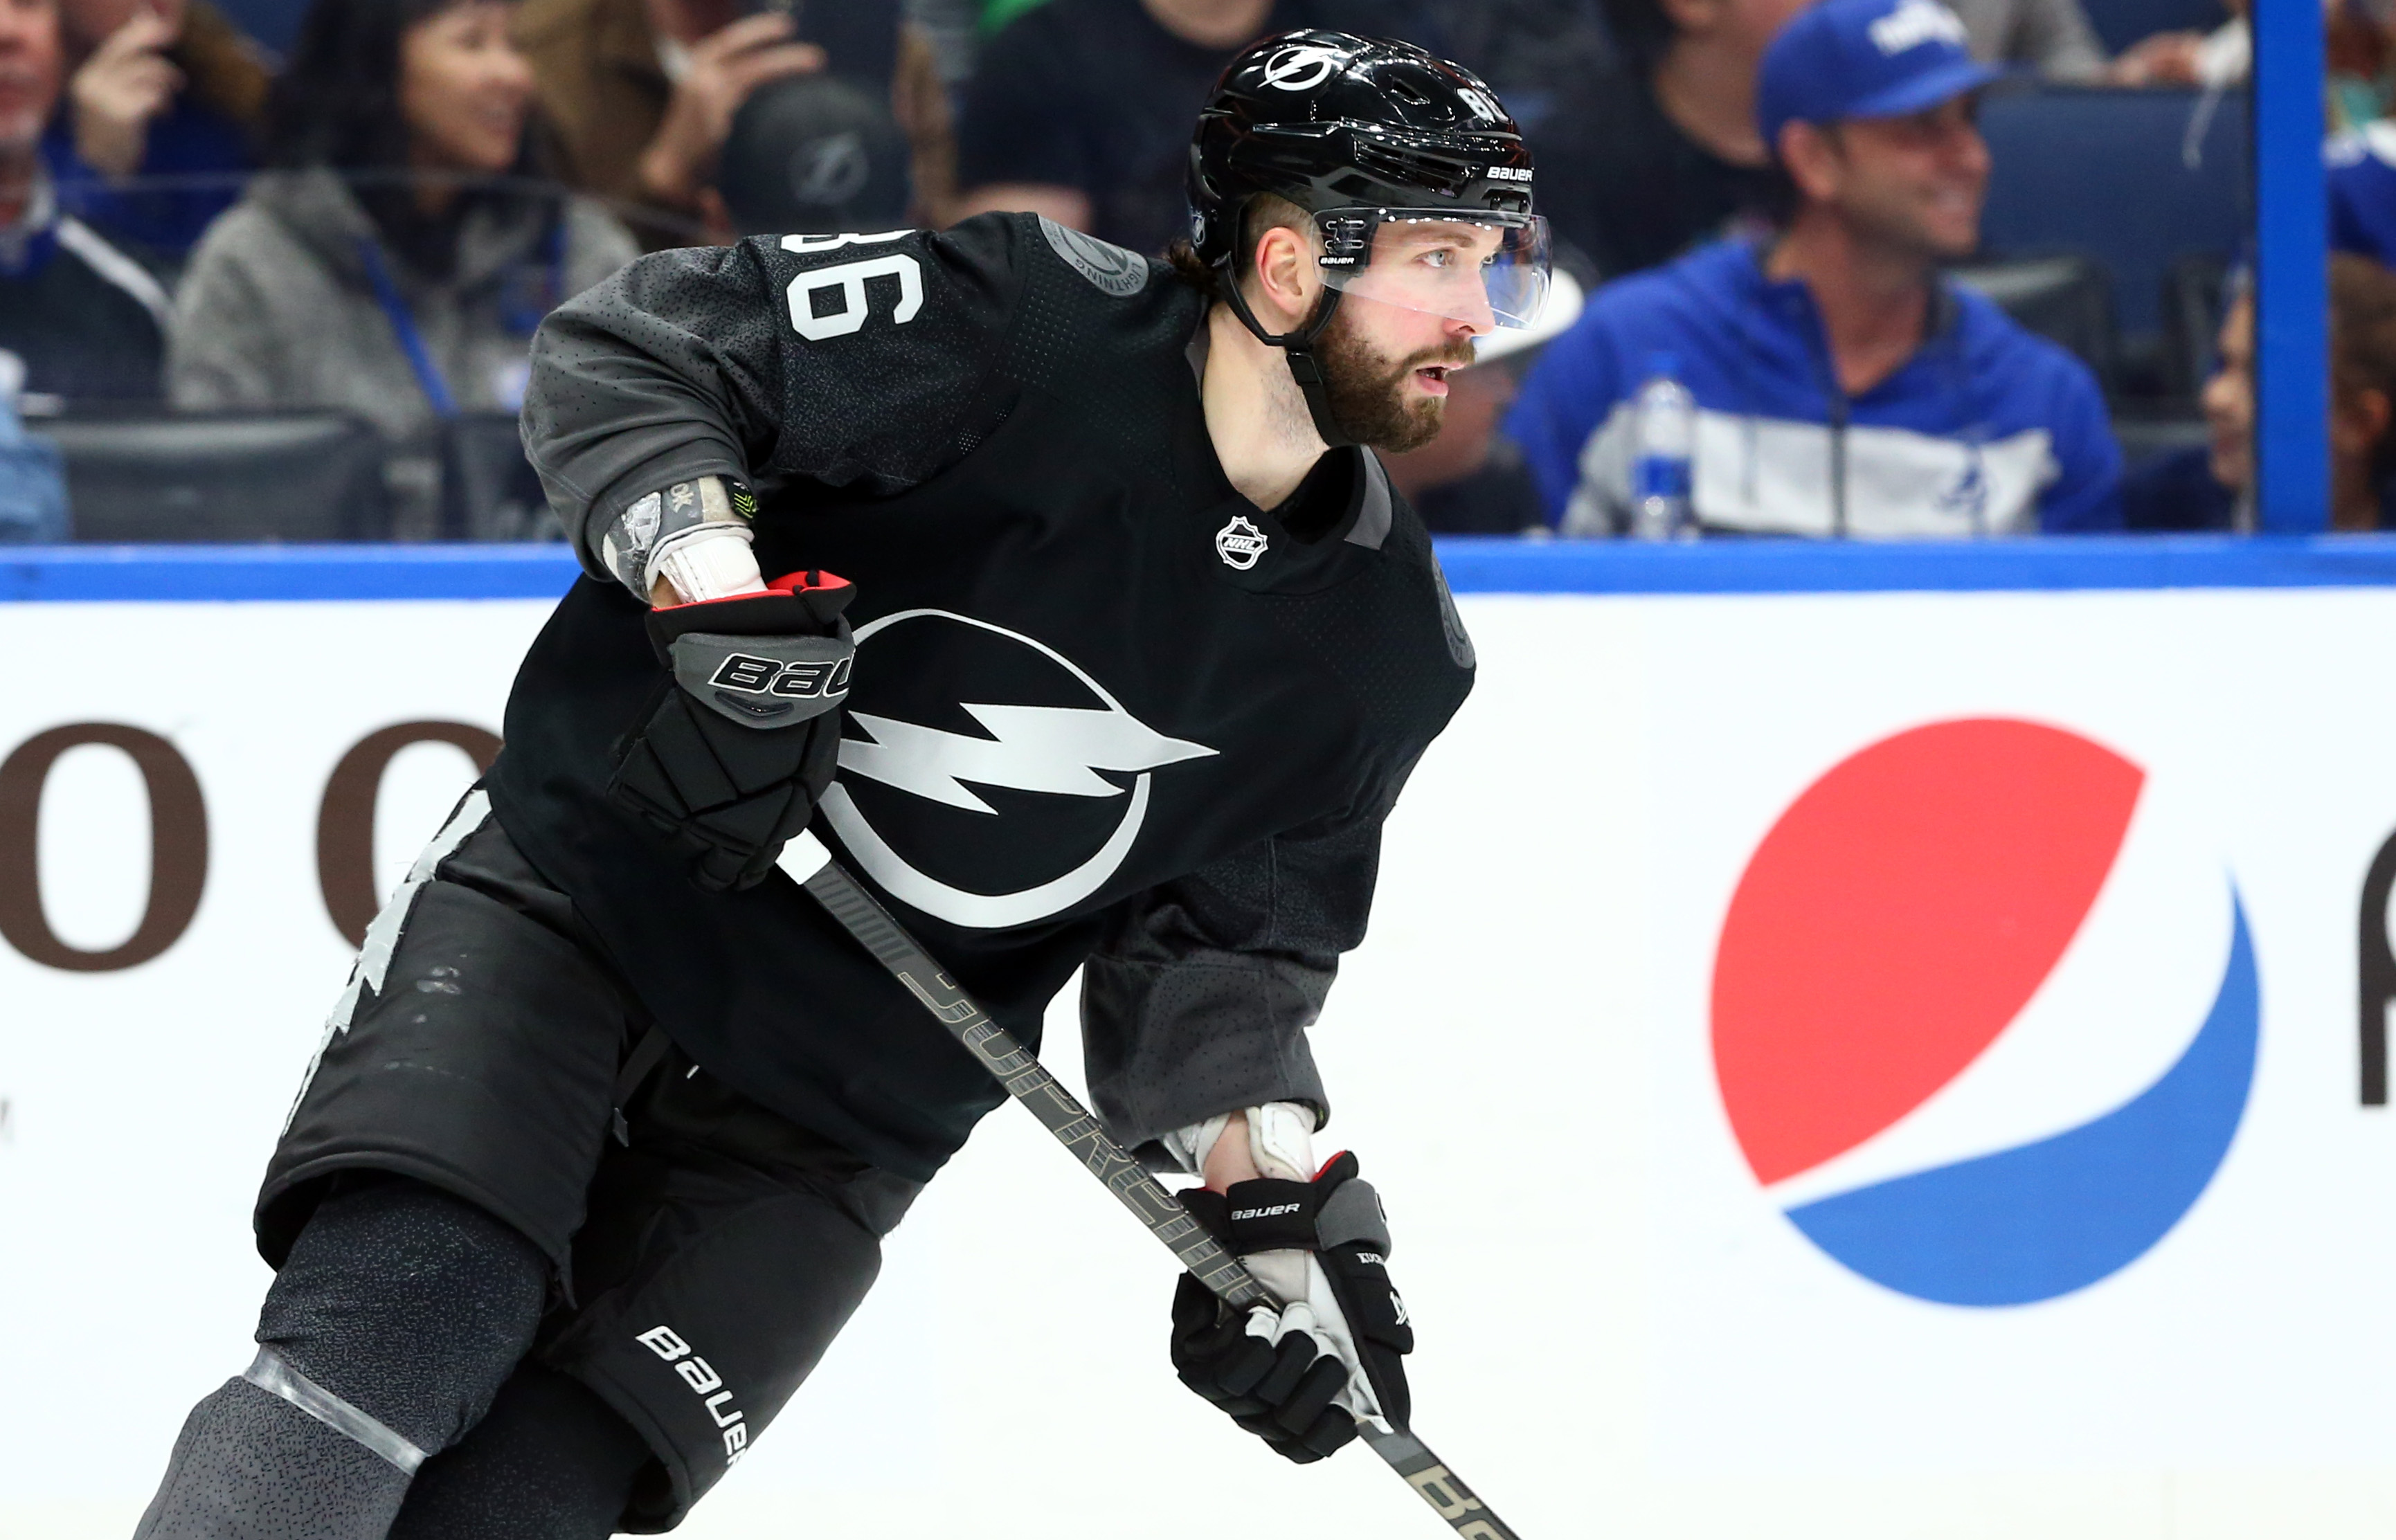 Tampa Bay Lightning right wing Nikita Kucherov skates with the puck against the Calgary Flames during the second period at Amalie Arena.